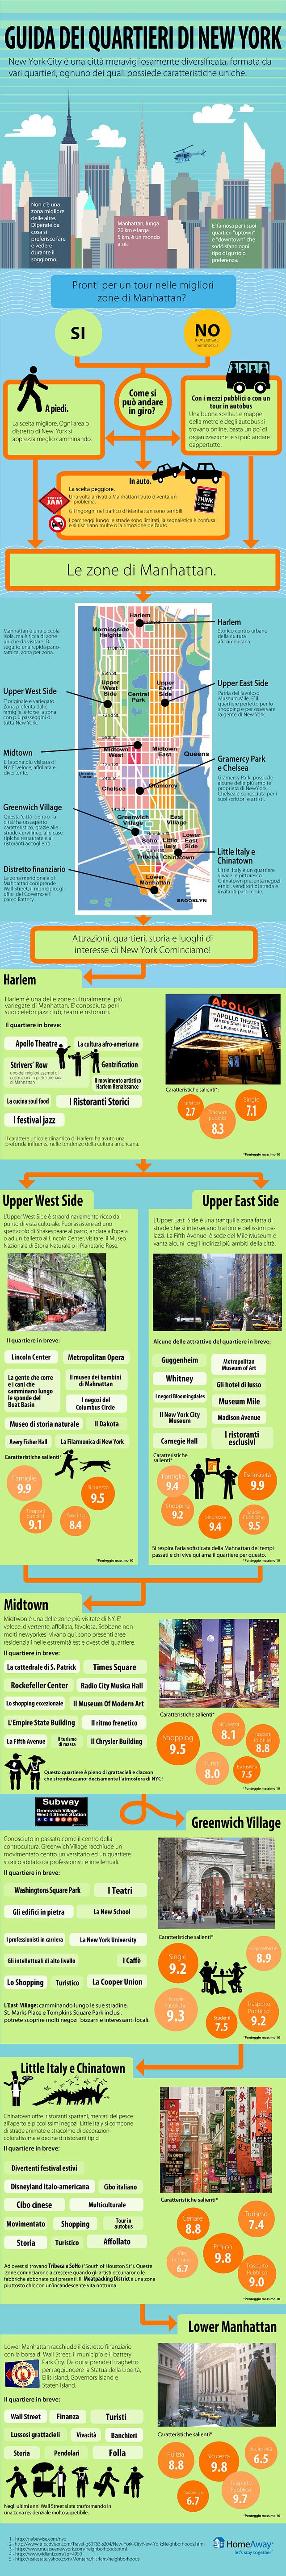 Zone di Manhattan - Quartieri di New York (Infographic)